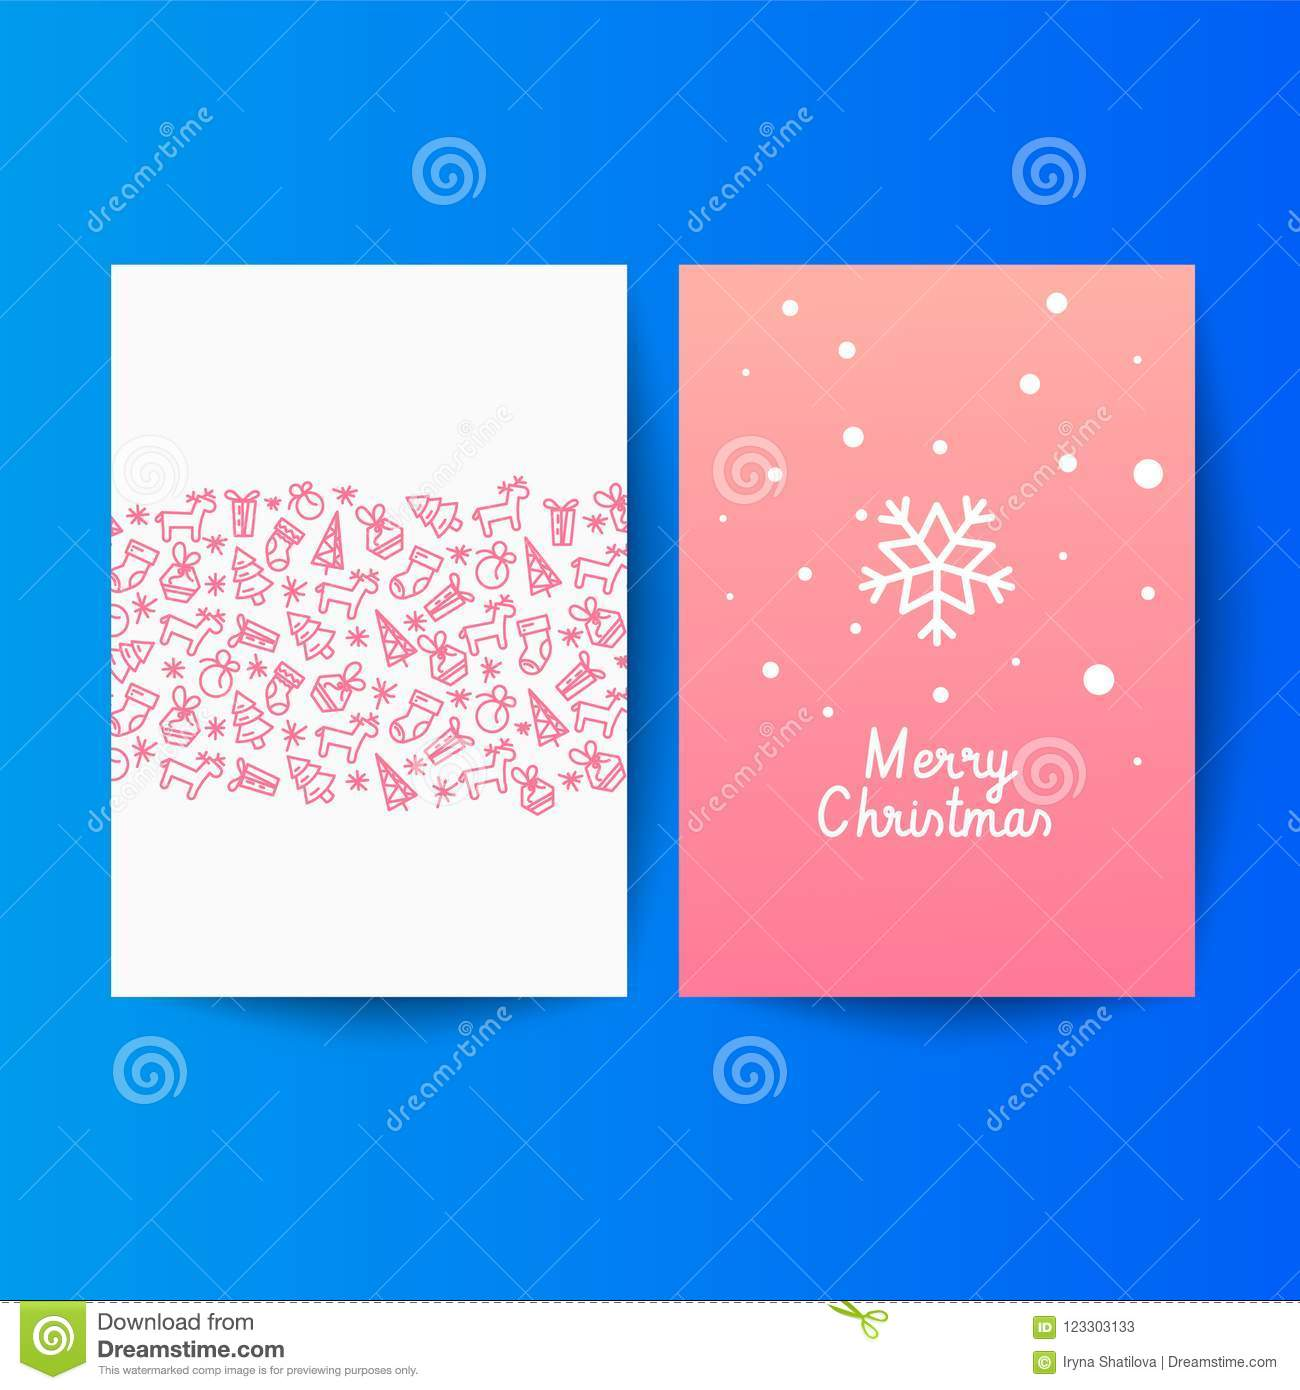 Premium Background For Holiday Greeting Card Stock Vector